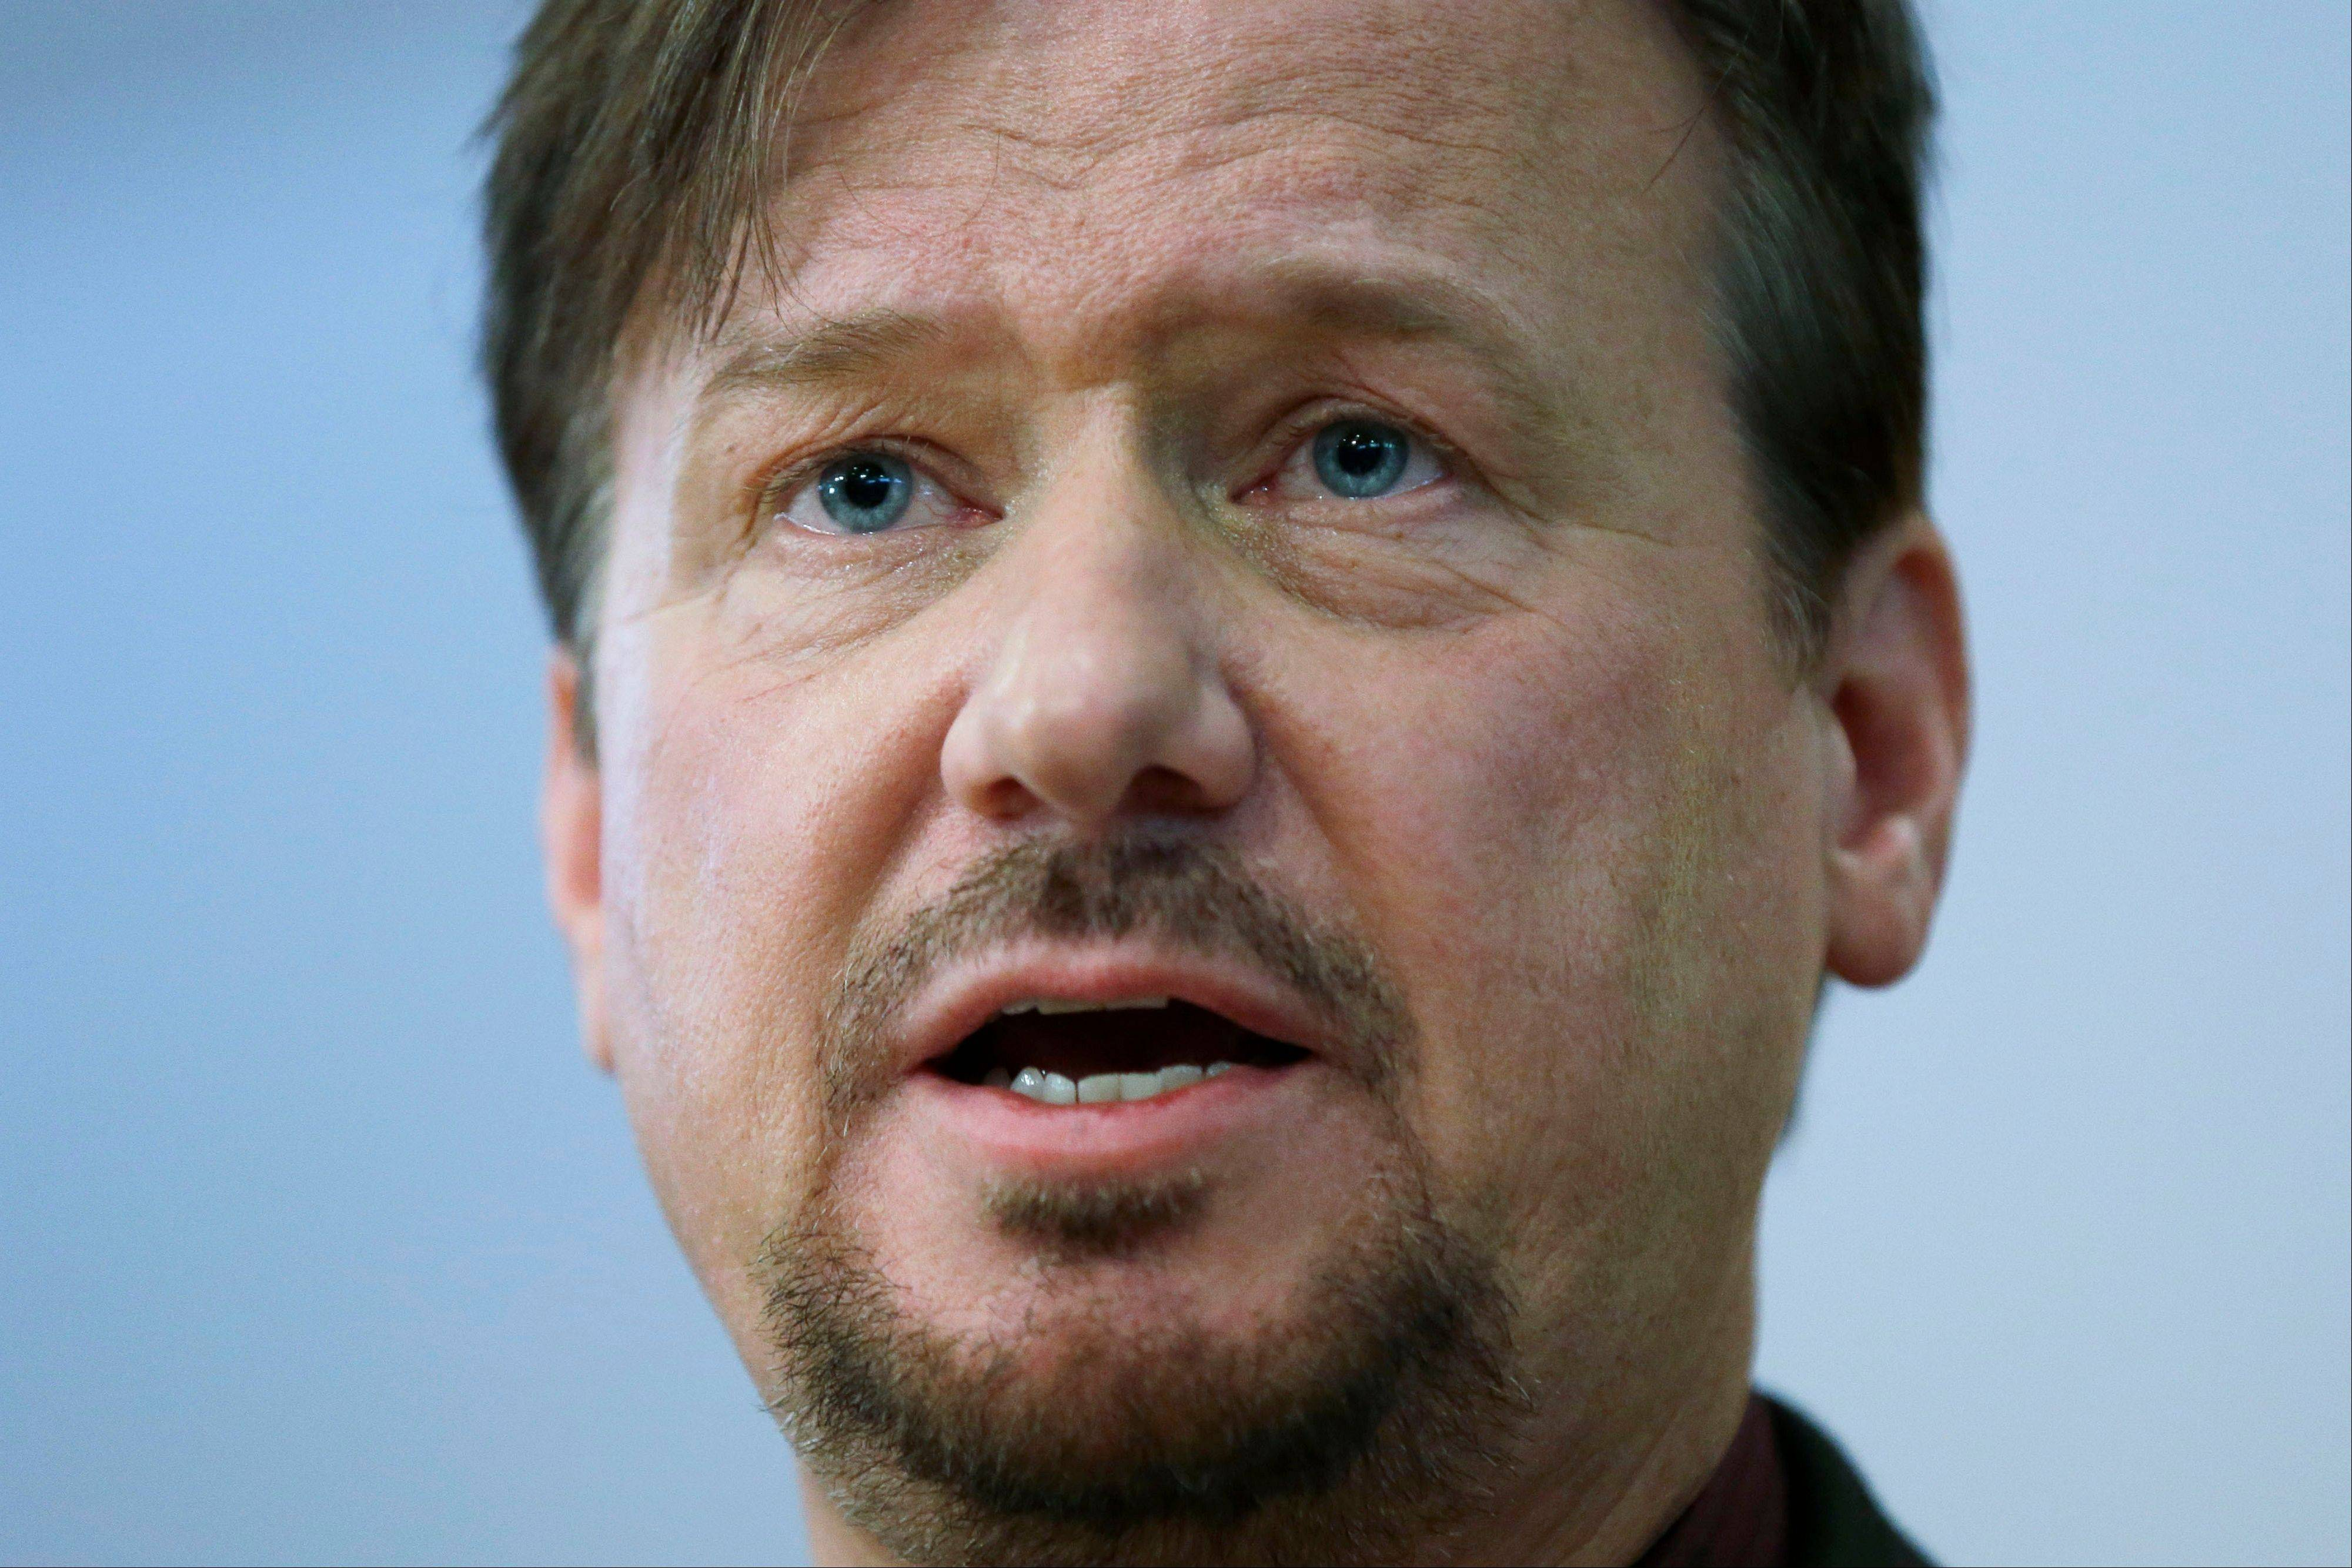 United Methodist Church officials defrocked The Rev. Frank Schaefer on Thursday after he officiated his son's gay wedding in Massachusetts.